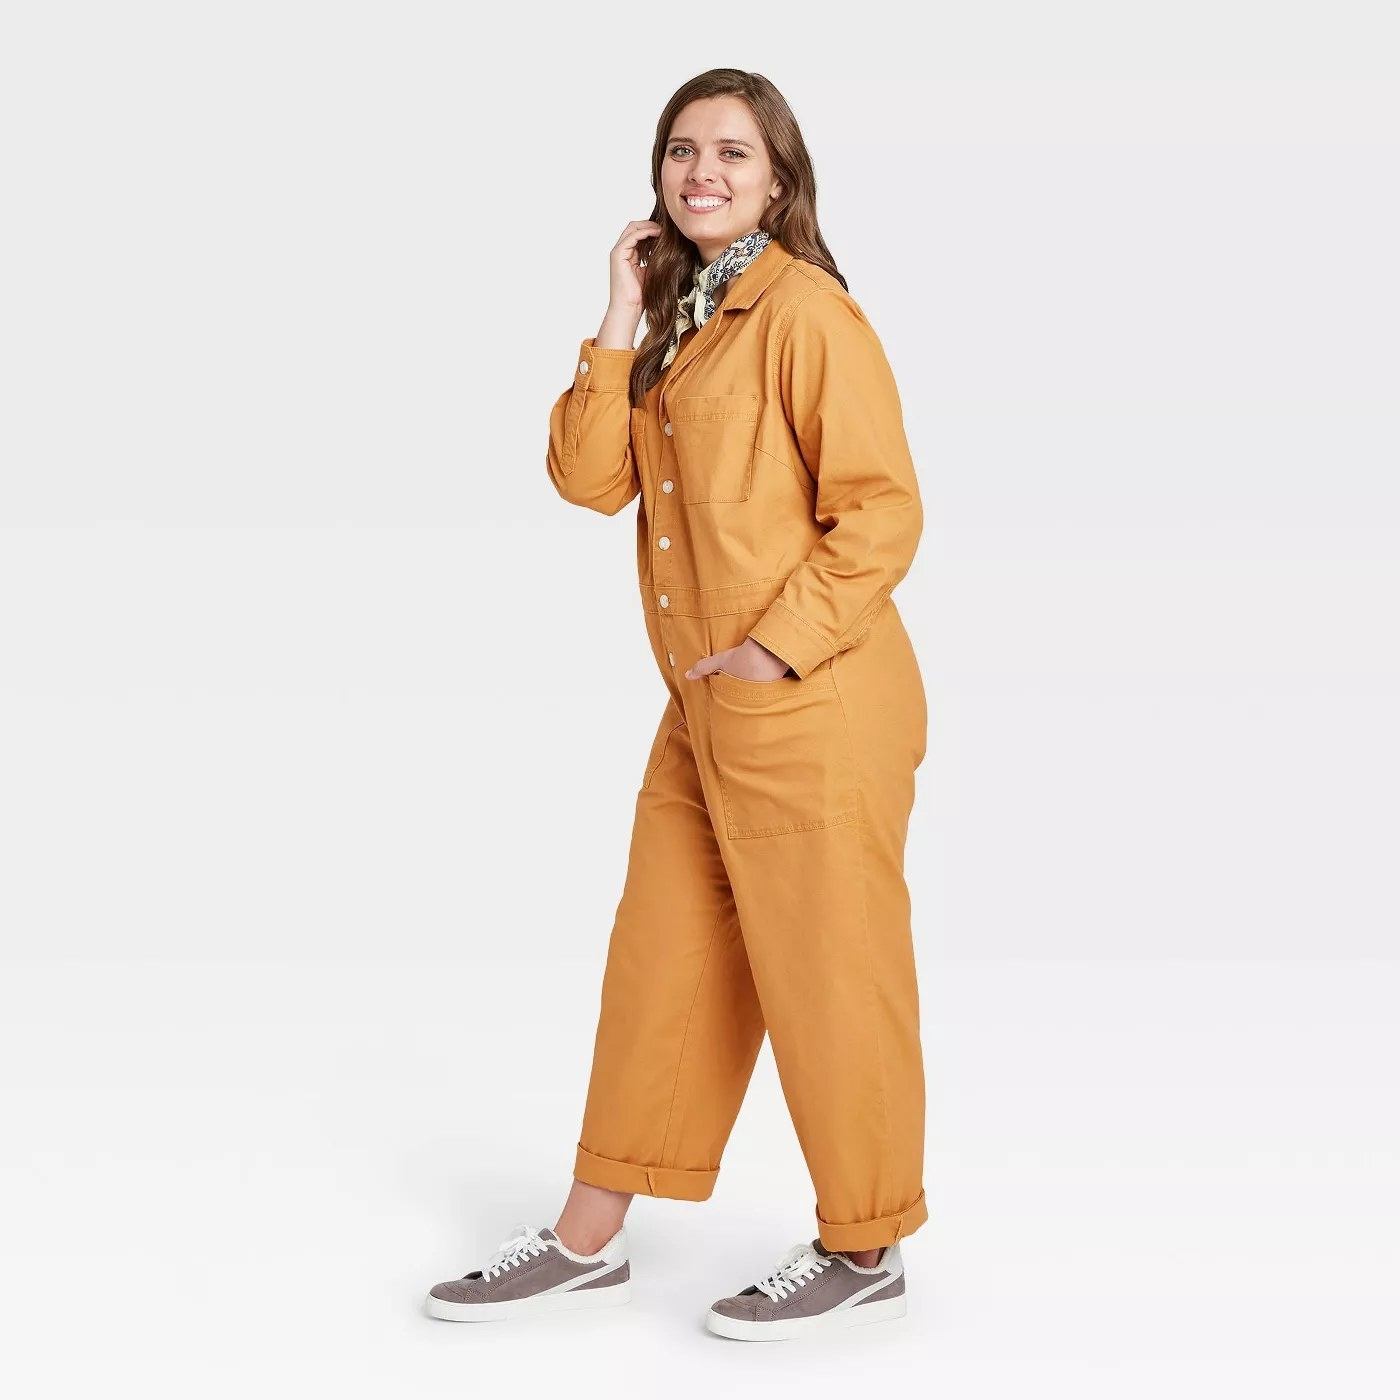 model wears mustard yellow coveralls with gray sneakers